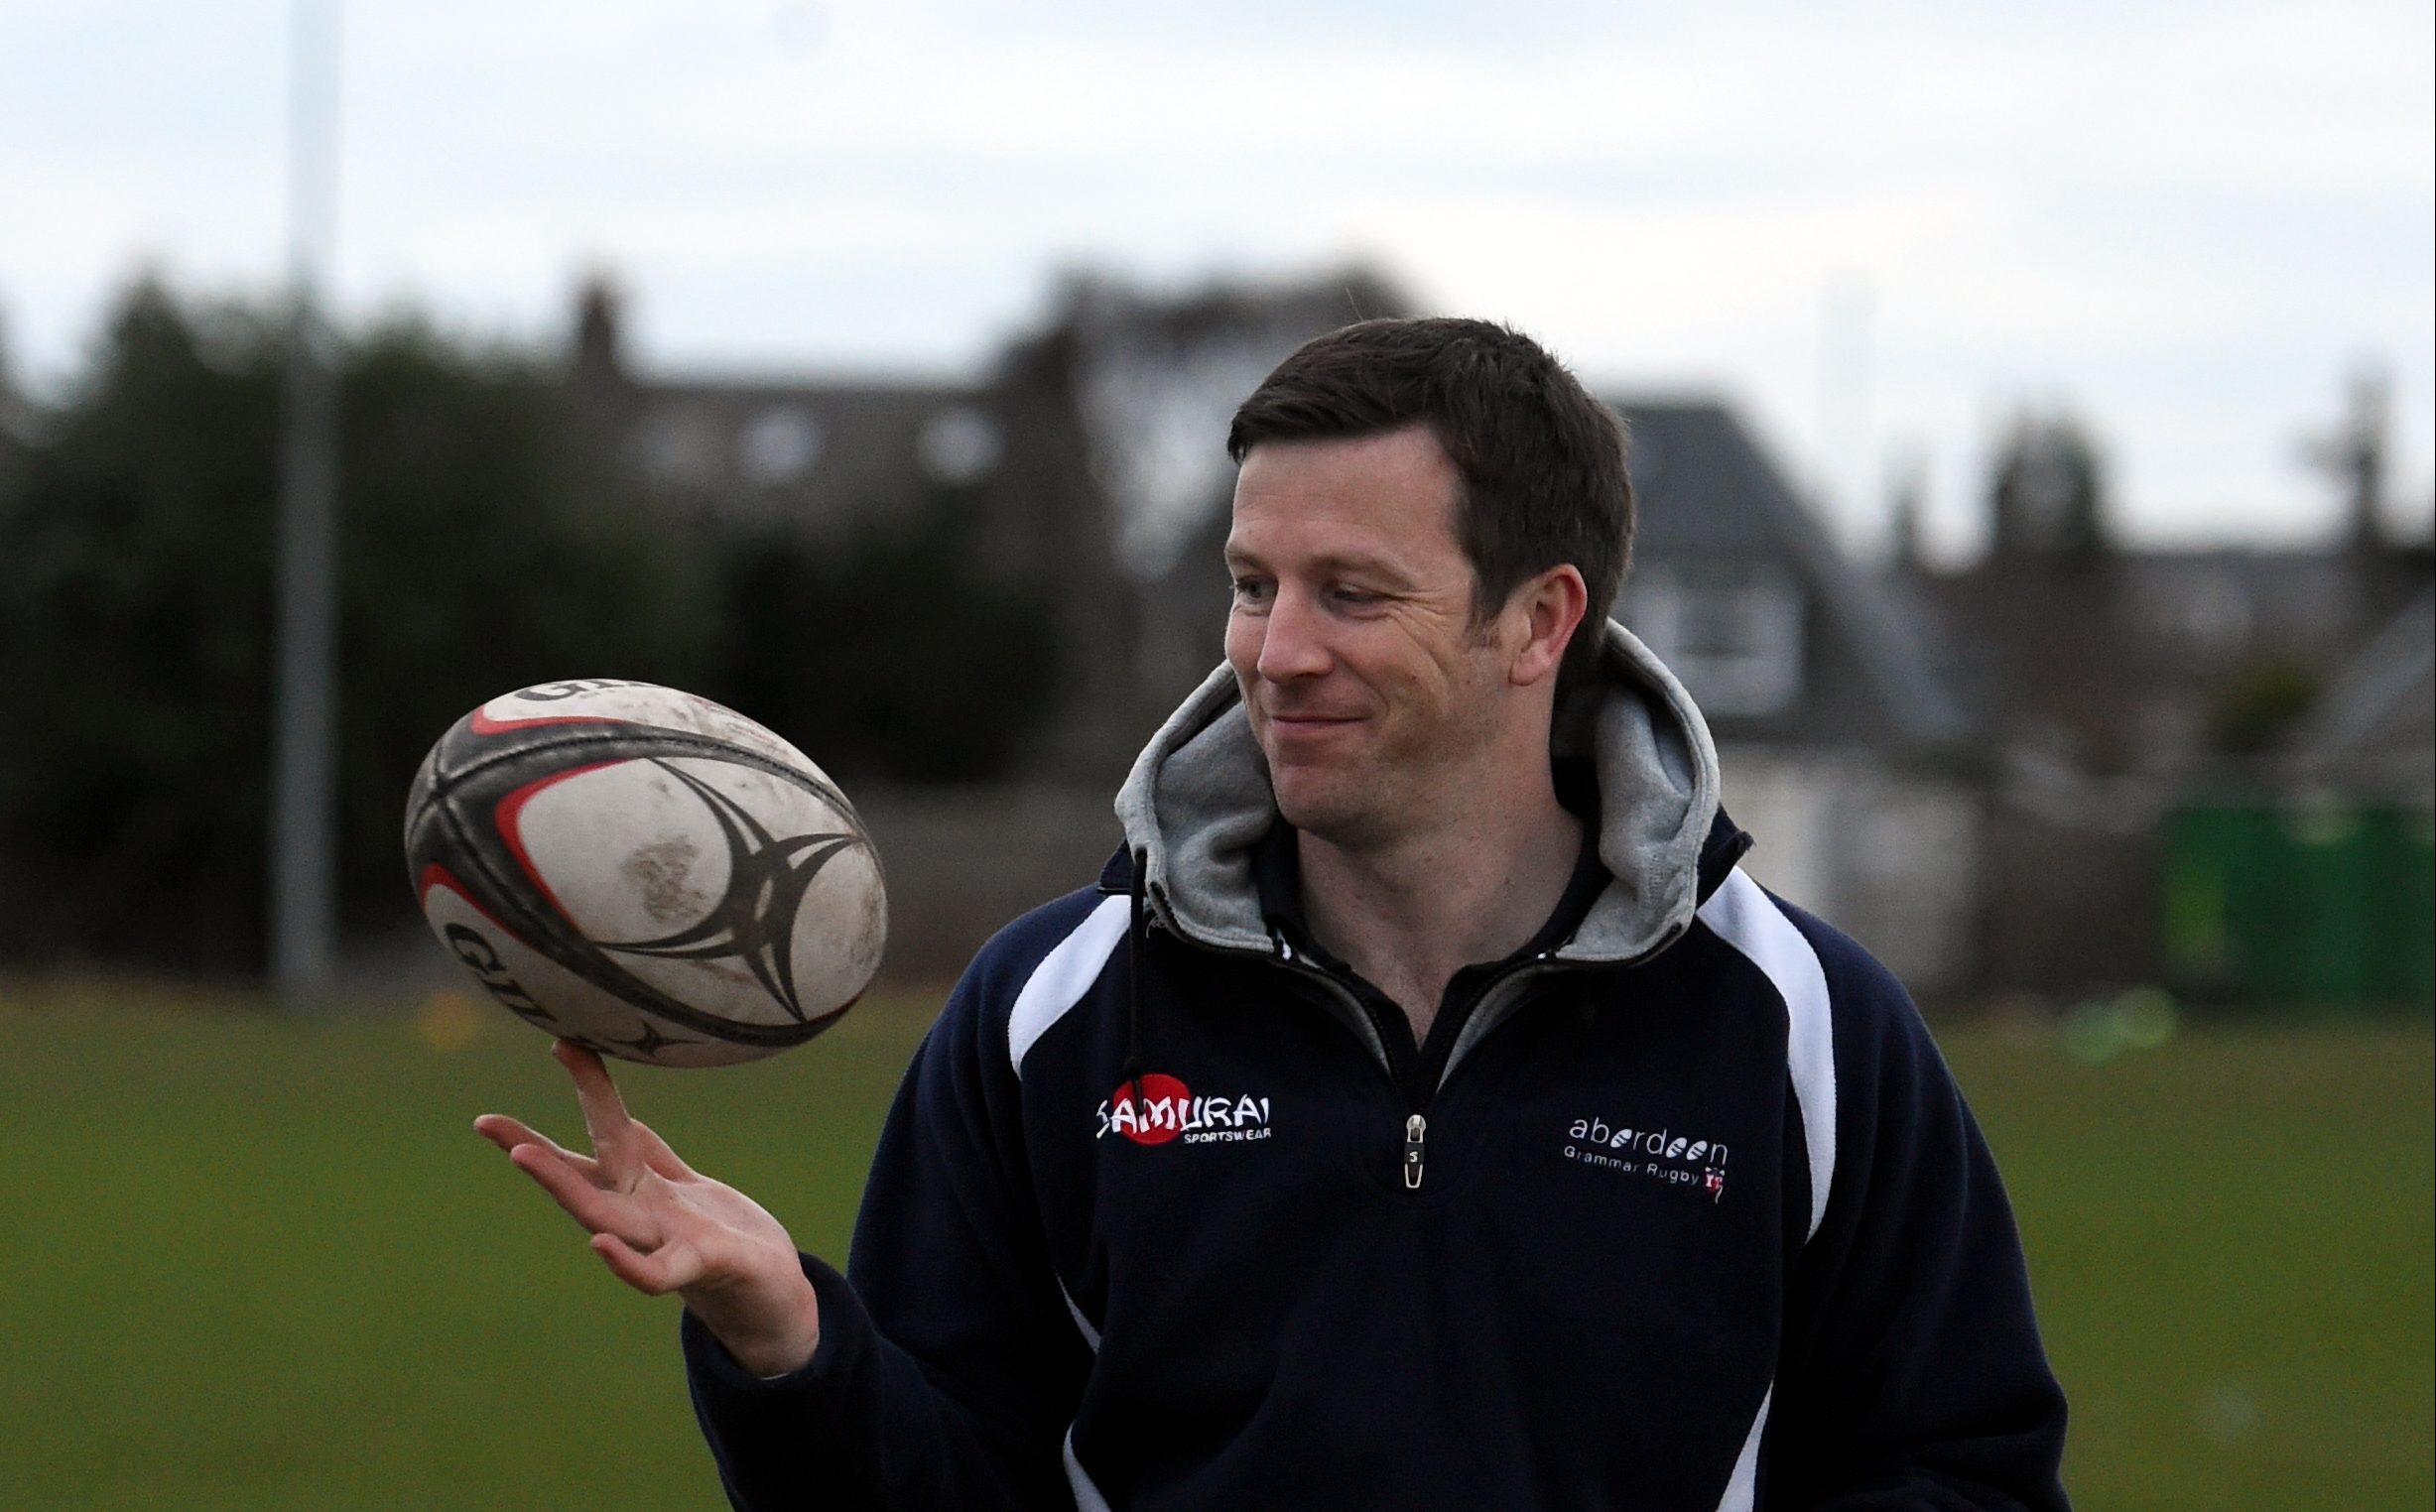 Aberdeen Grammar head coach Ali O'Connor